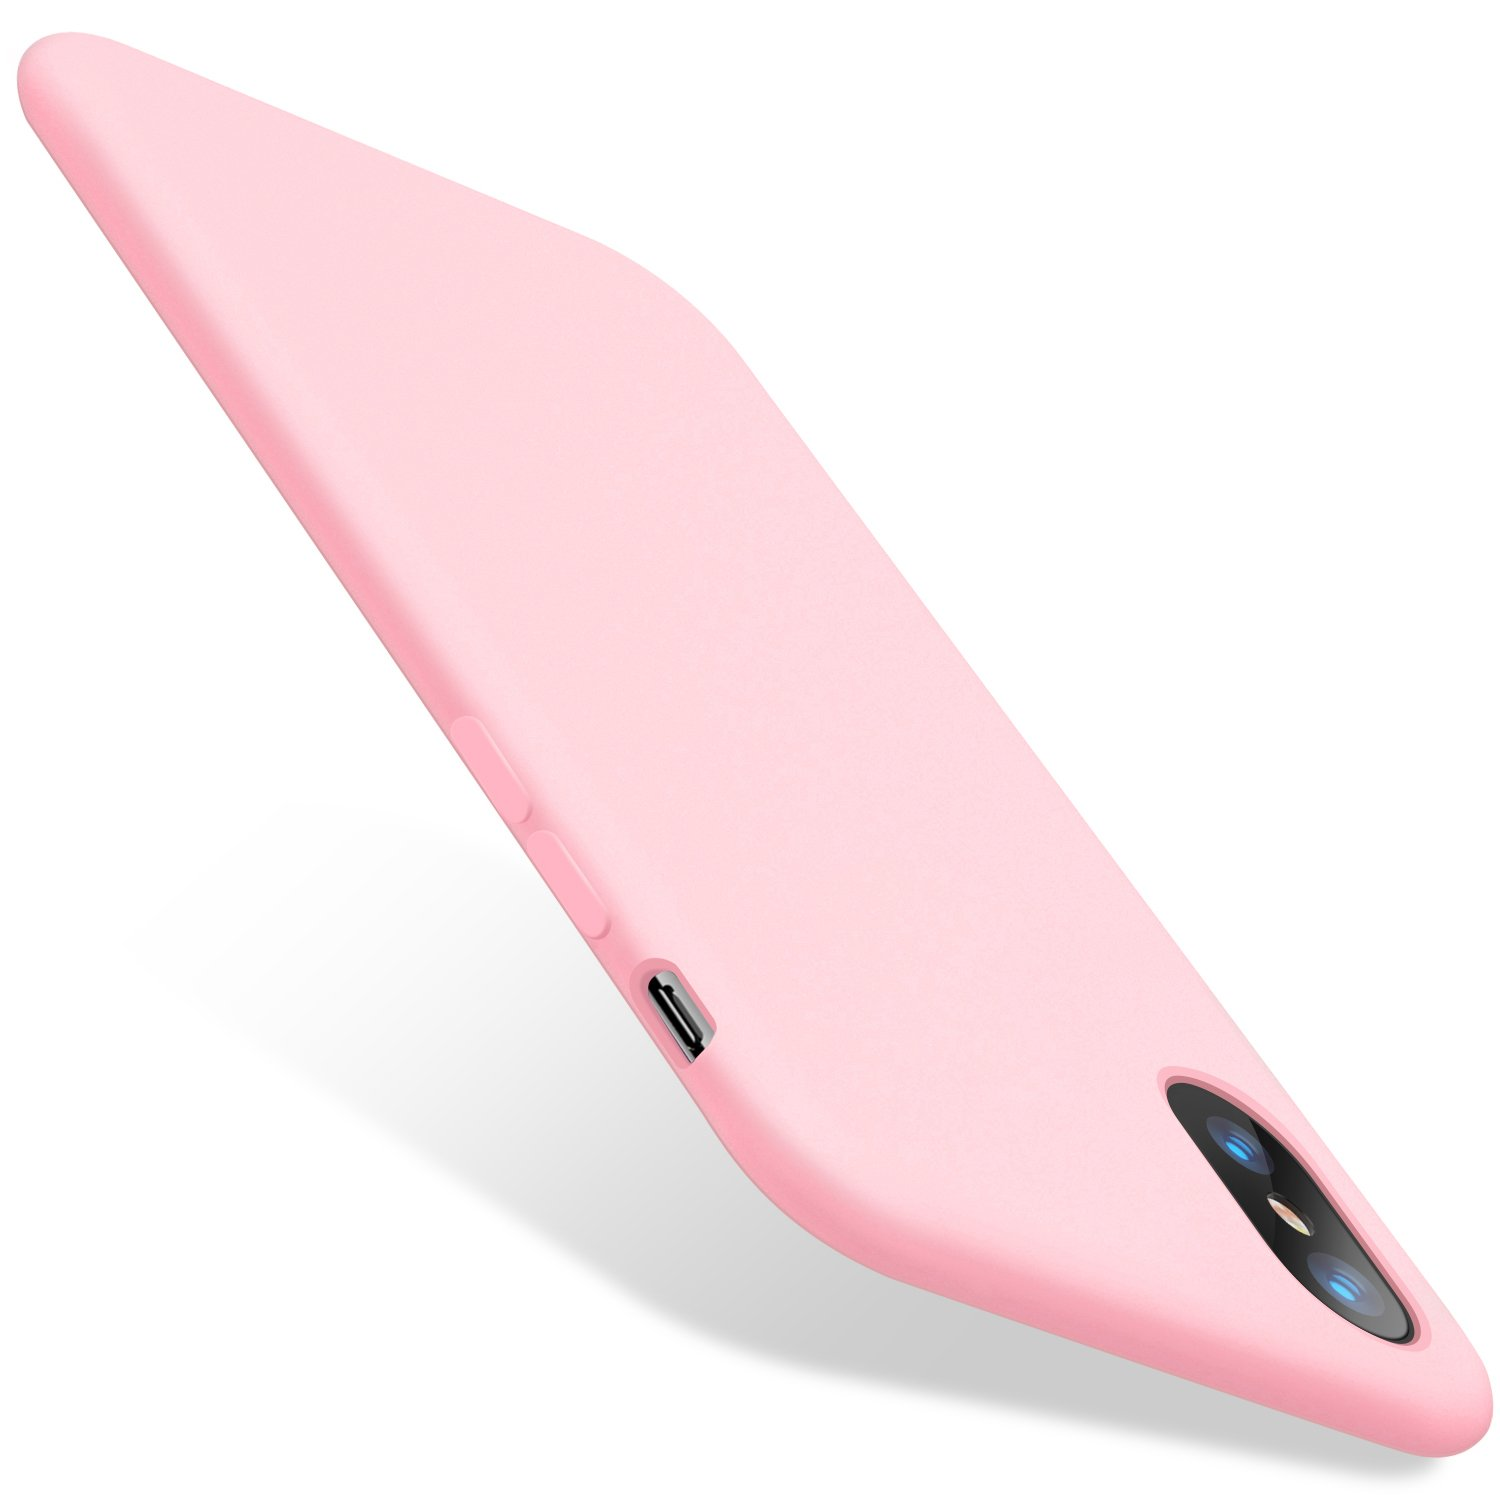 TORRAS [Love Series] iPhone X Case 2017 (ONLY), Liquid Silicone Gel Rubber Shockproof Case Soft Microfiber Cloth Lining Cushion Compatible with iPhone X (2017), Pink